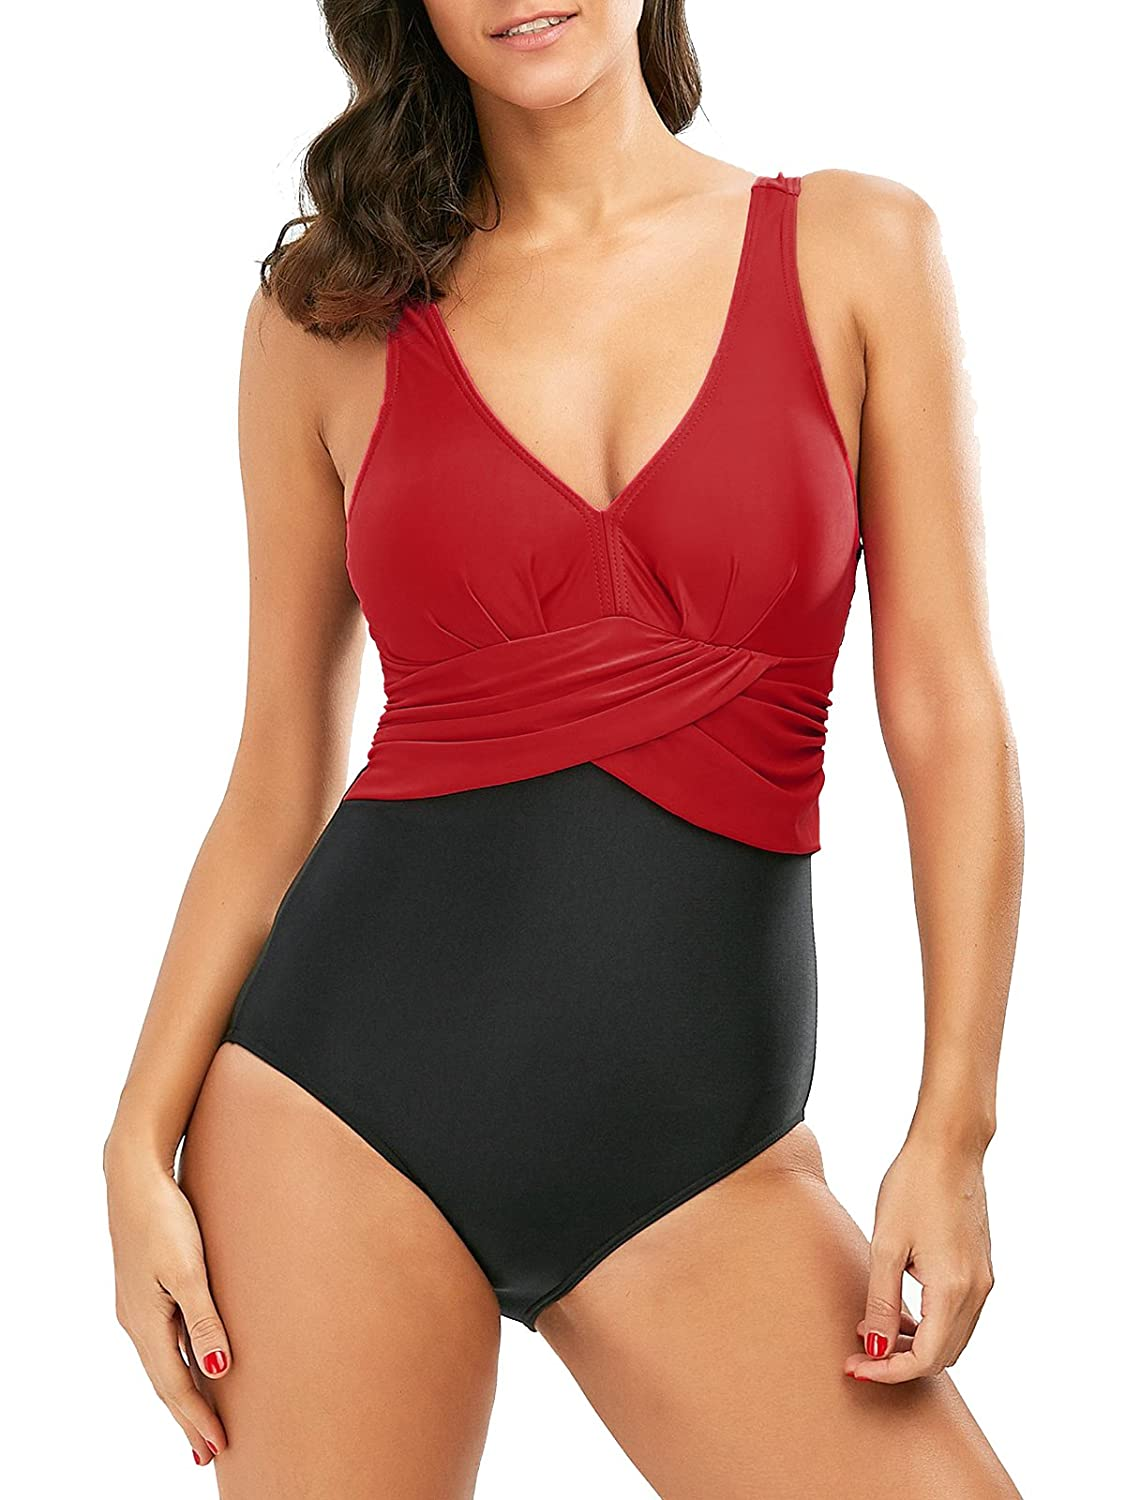 f8a2a71189 Womens One Piece Slimming Plus Size Swimsuits Tummy Control Swimwear V-Neck Stylish  Bathing Suits at Amazon Women s Clothing store